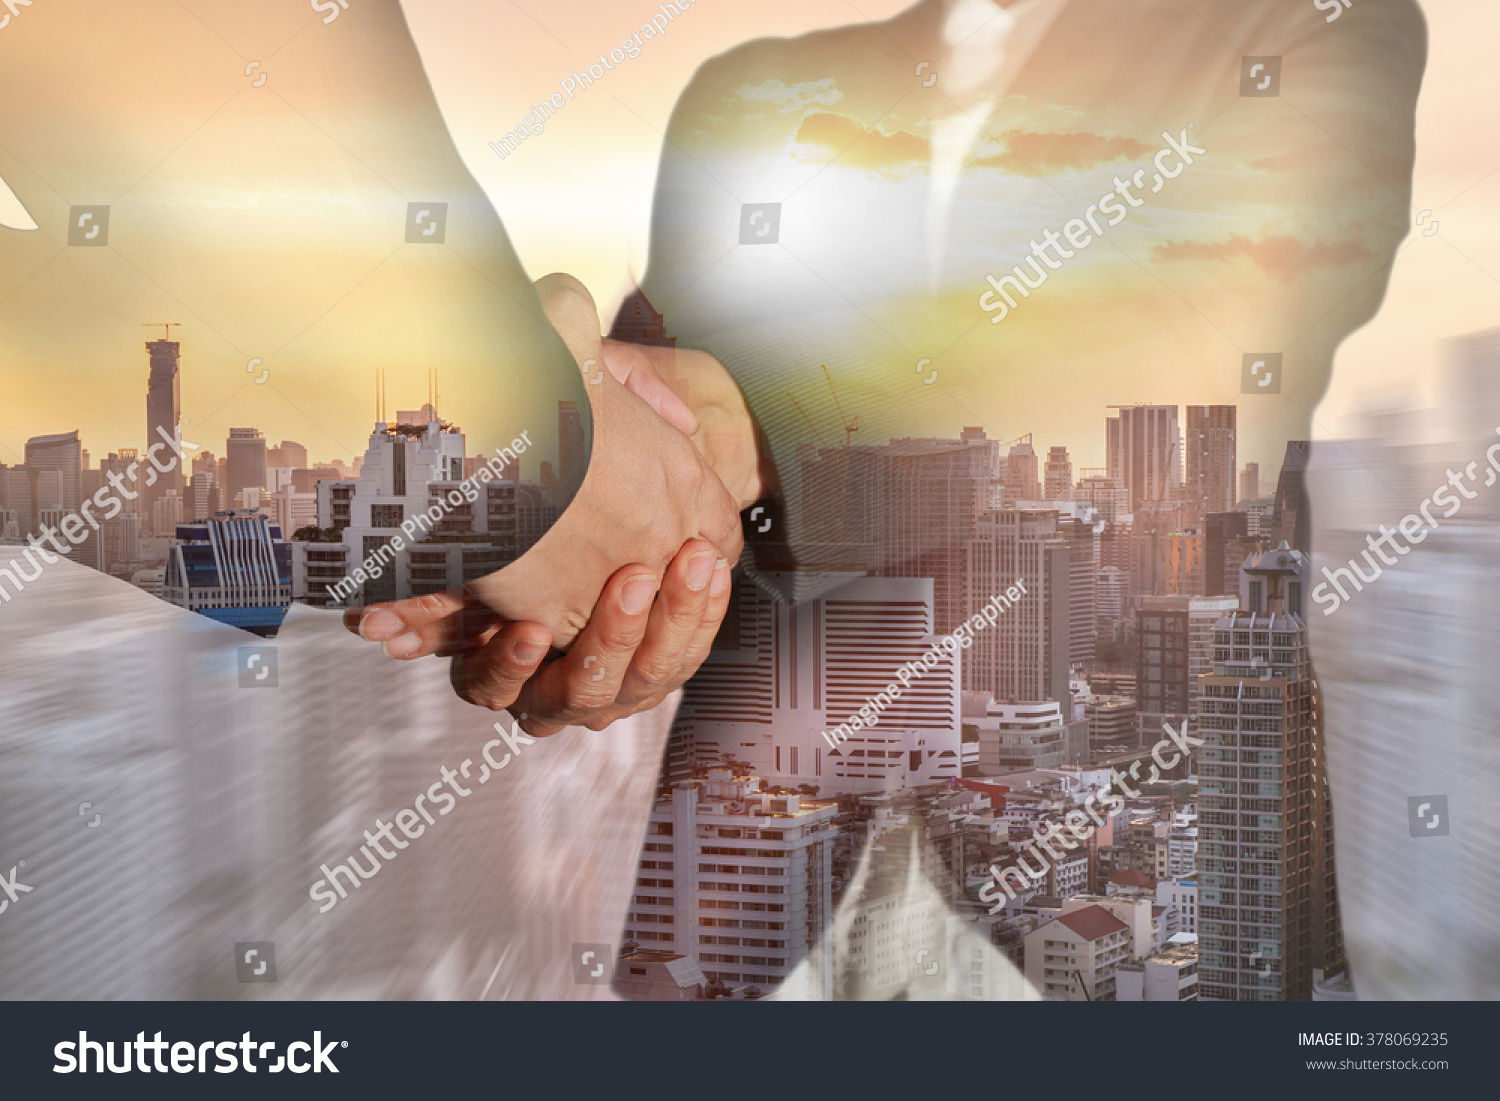 Double exposure of business women double handshake, city and sunset on camera zoom background as Welcome concept. #378069235